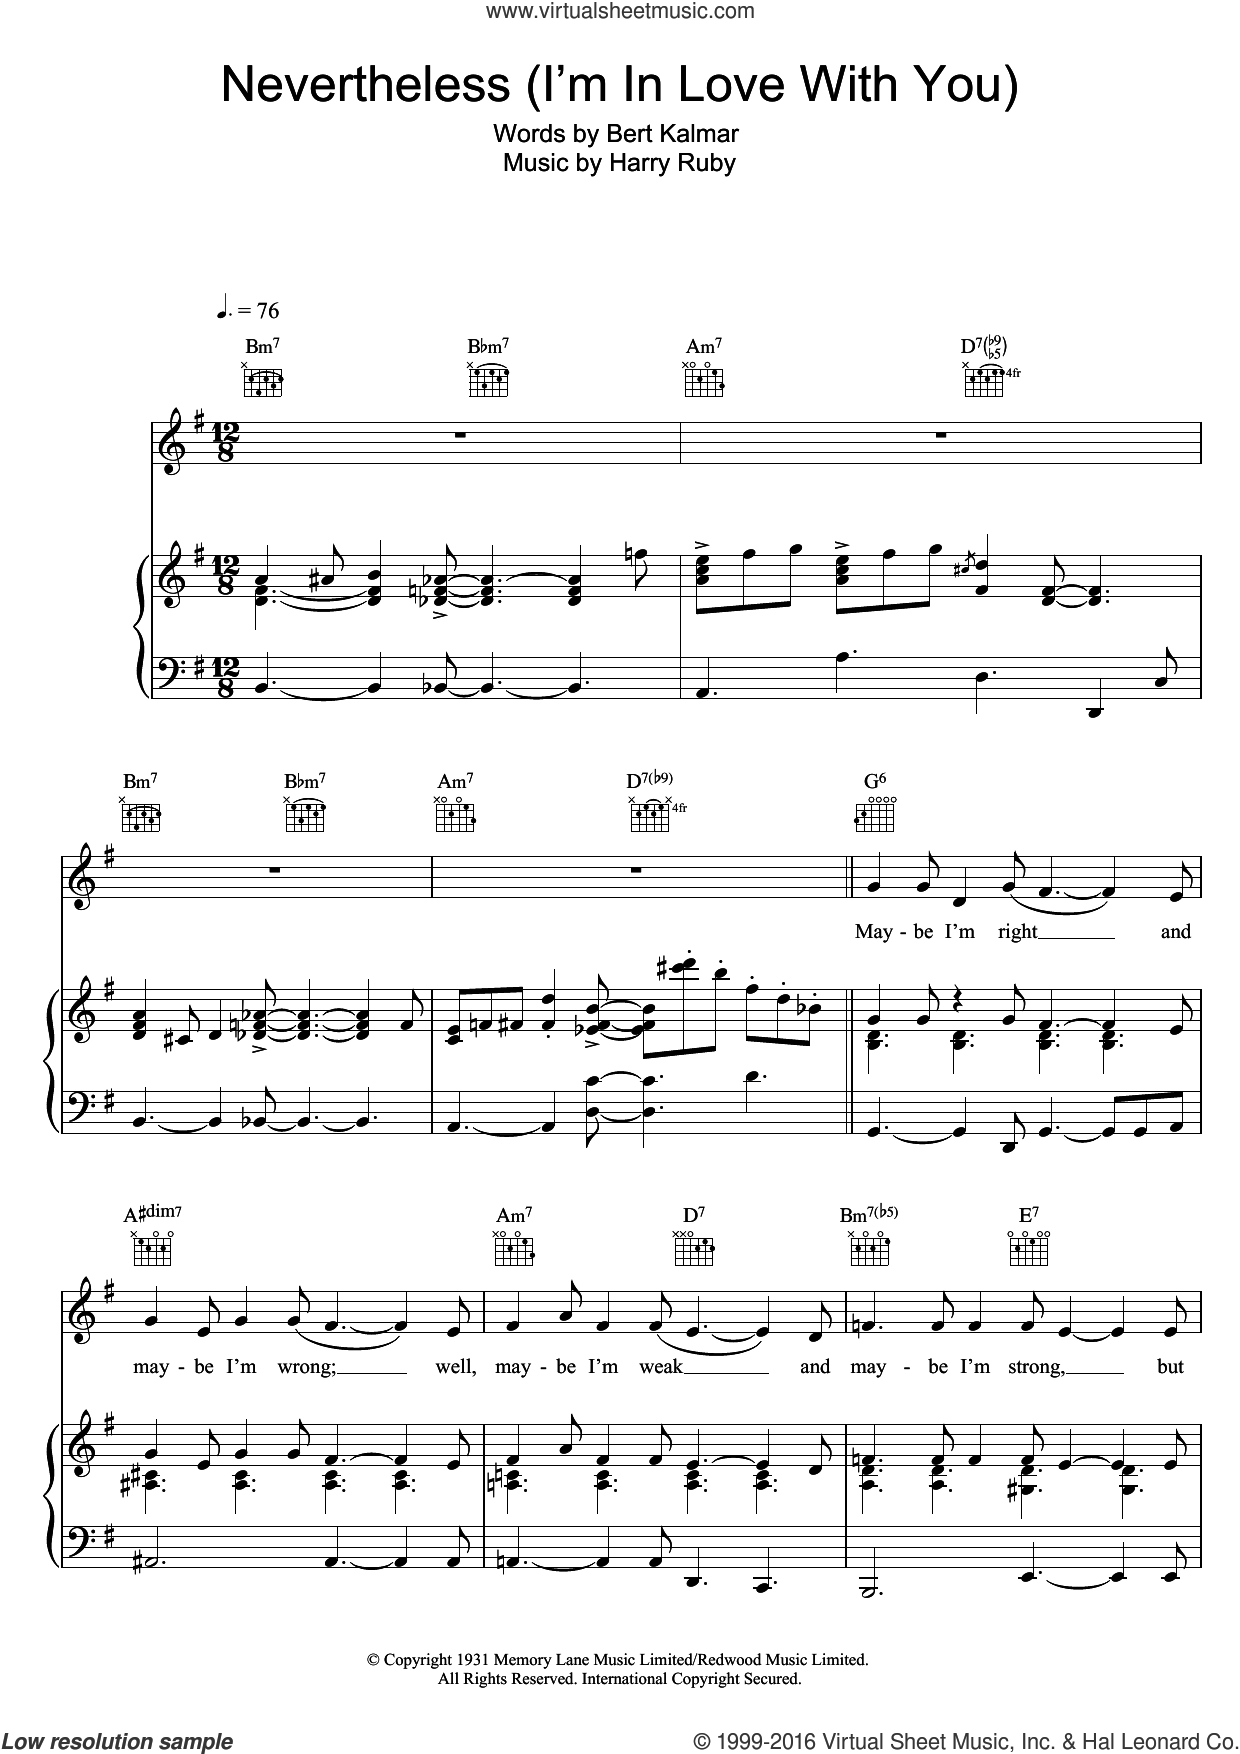 Nevertheless (I'm In Love With You) sheet music for voice, piano or guitar by Michael Buble, Bert Kalmar and Harry Ruby, intermediate skill level